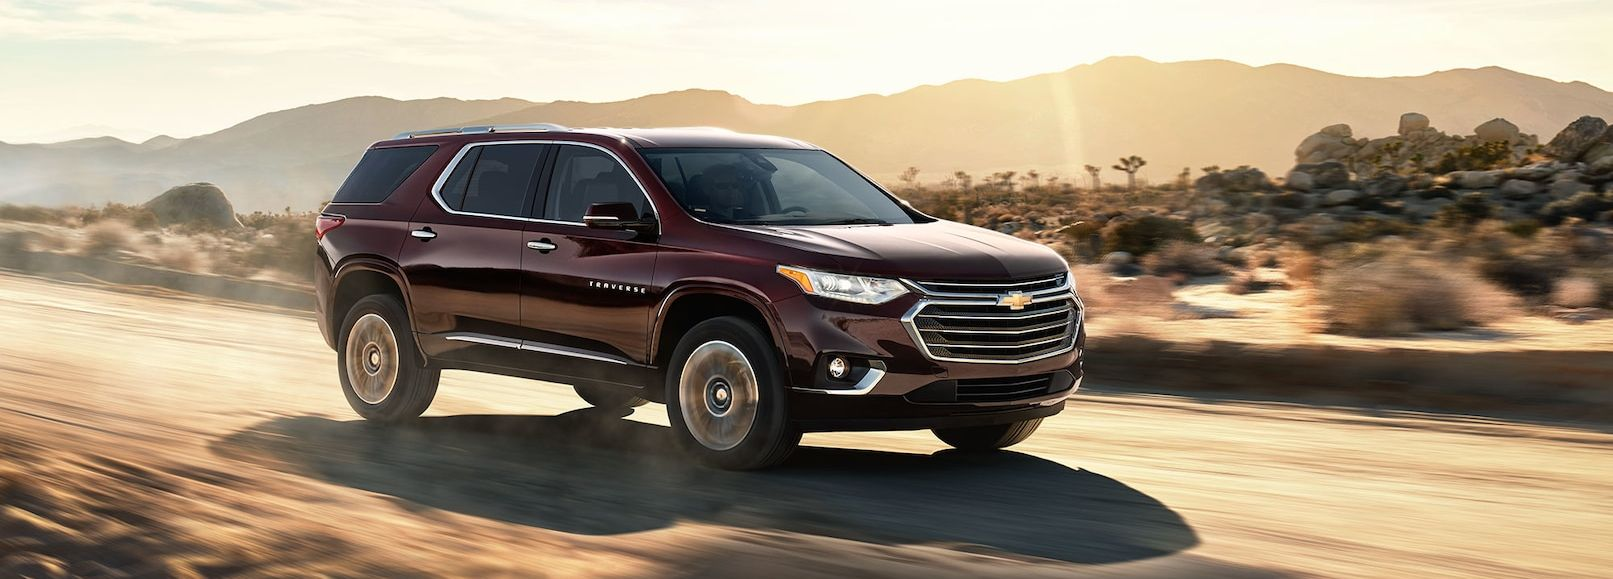 pembroke in chevrolet sale for pines traverse autonation